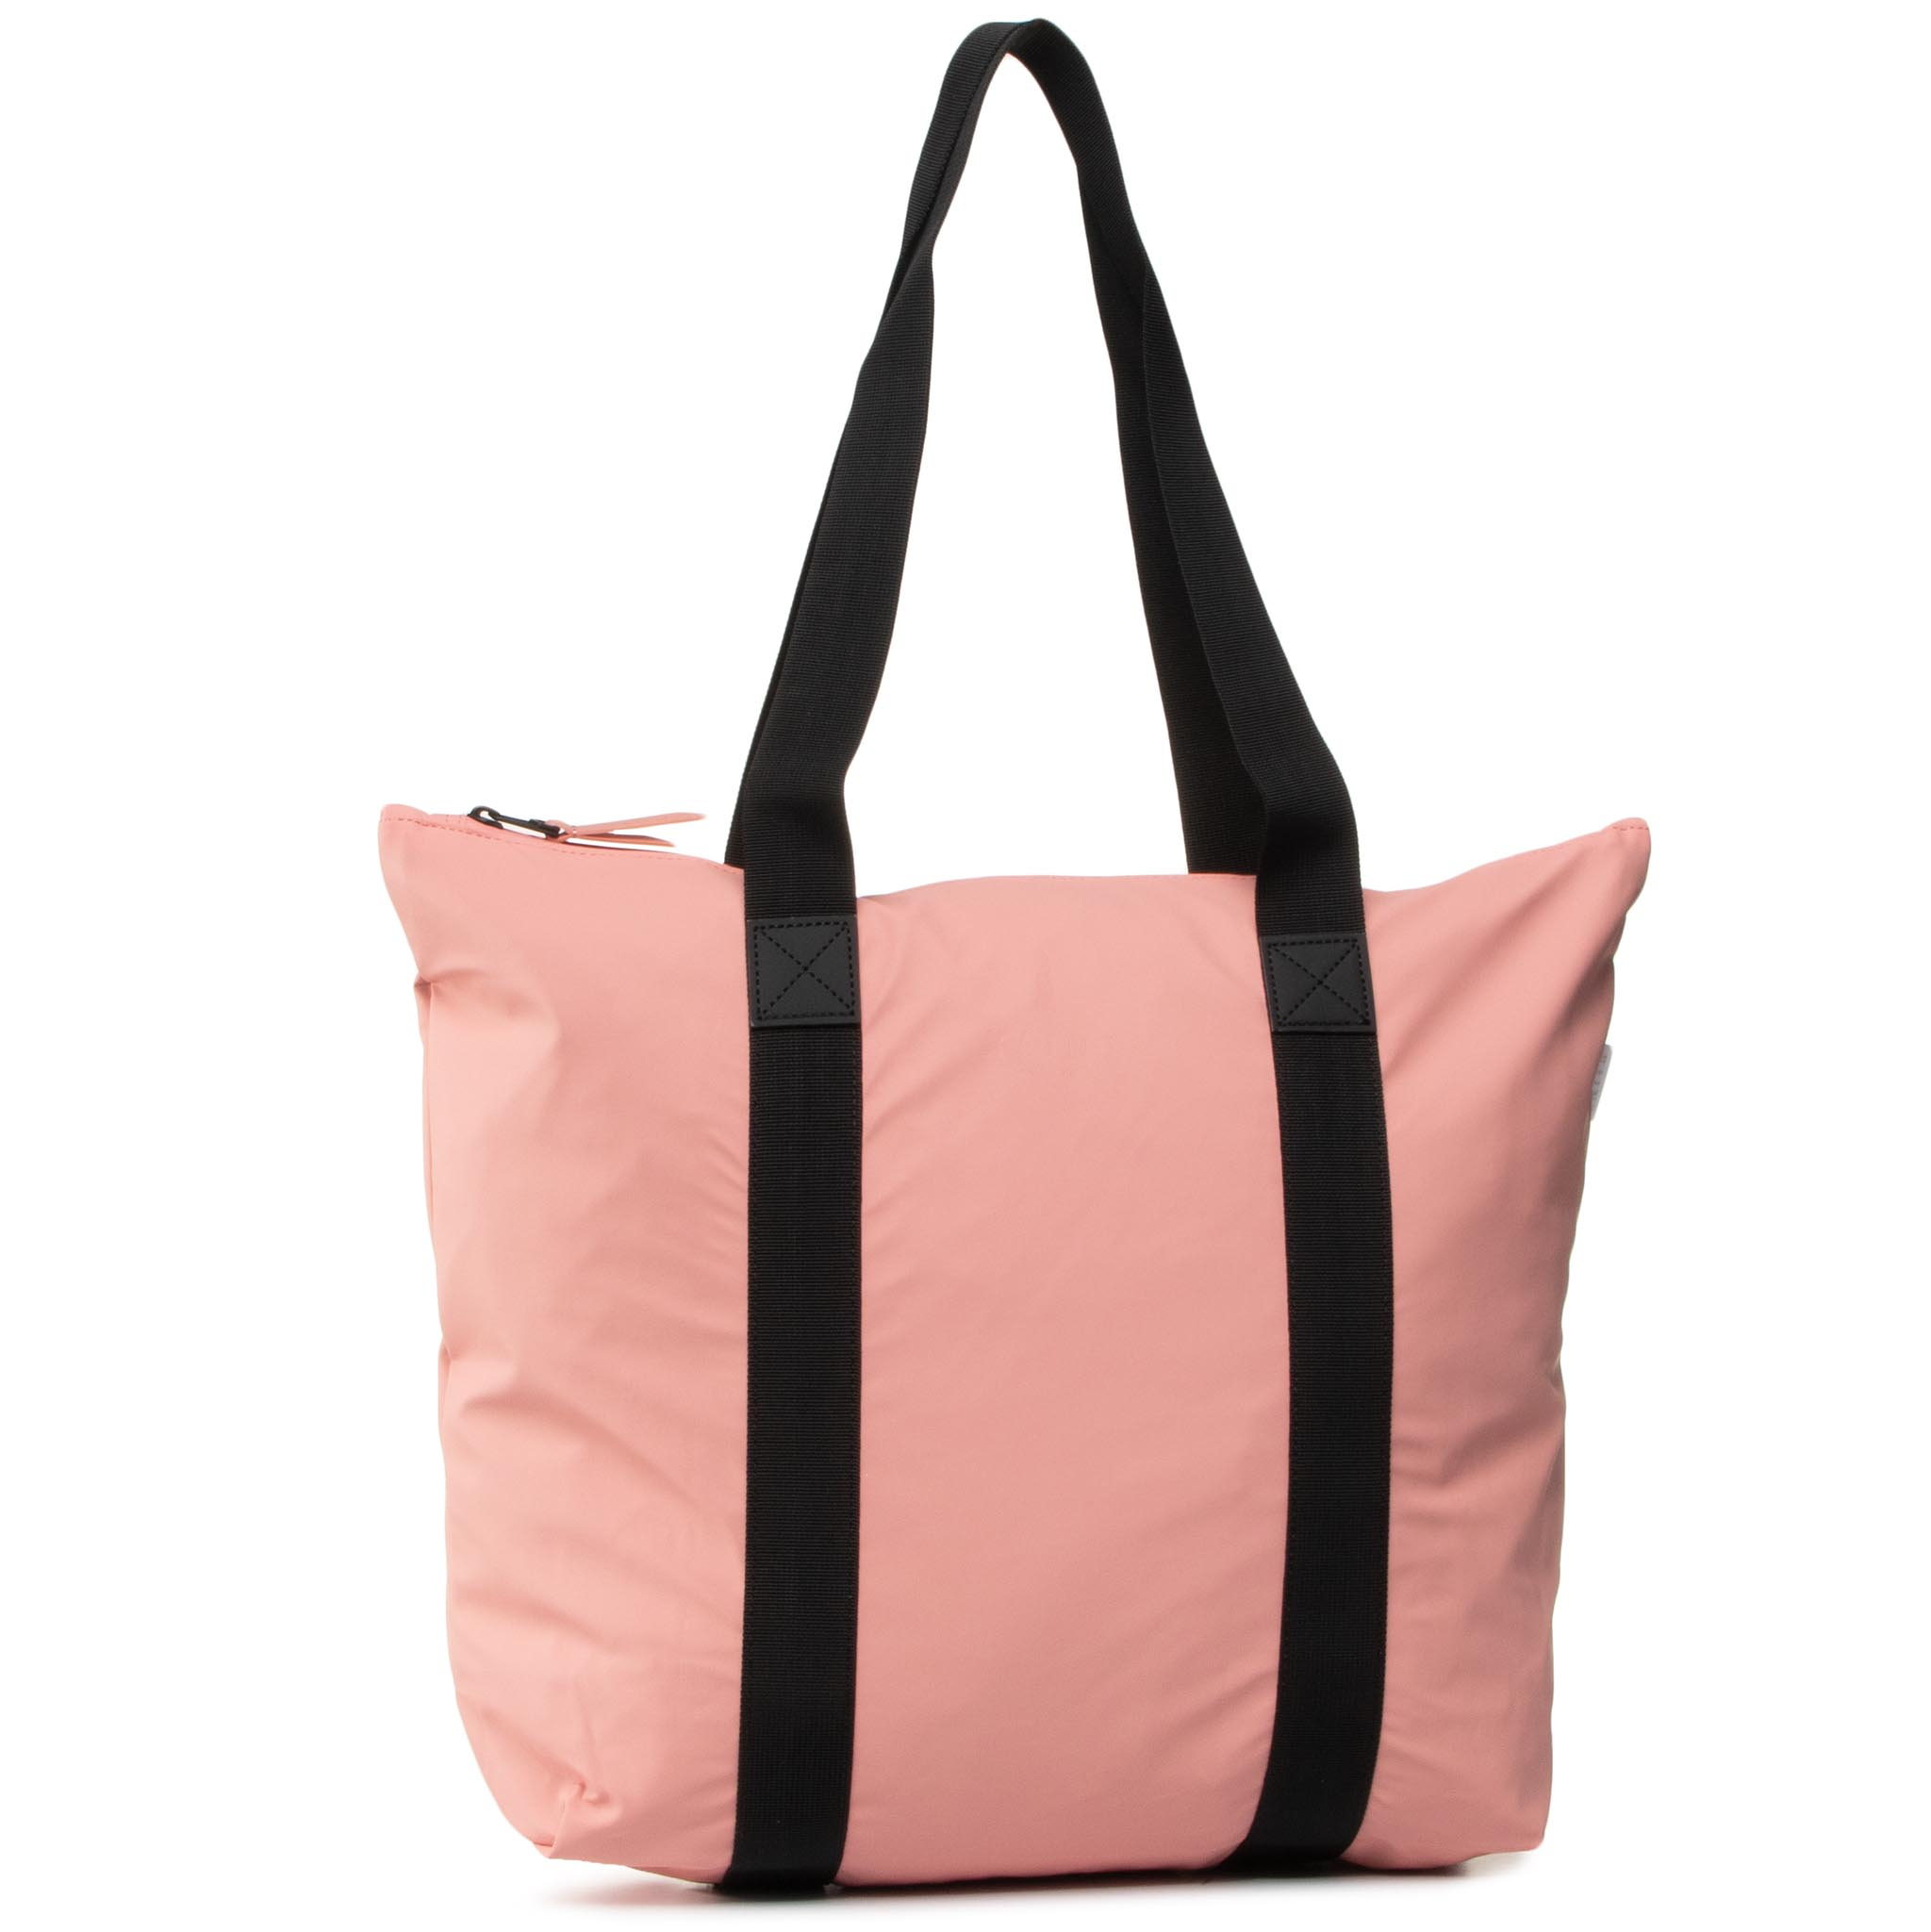 Geantă RAINS - Tote Bag Rush 1225 Coral 38